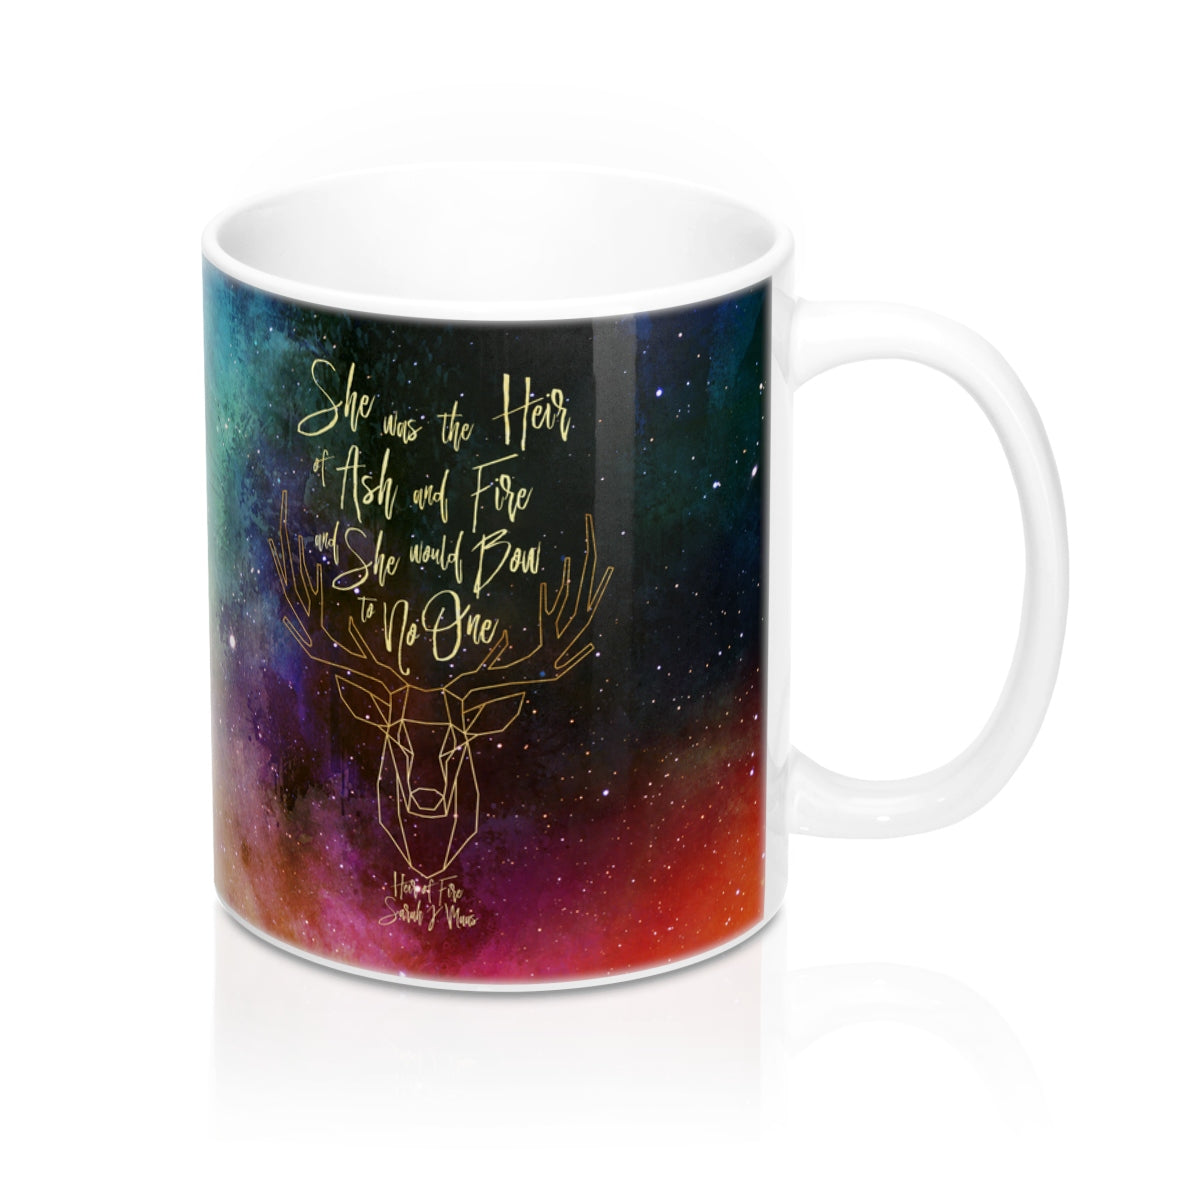 She was the heir... Heir of Fire (Throne of Glass Series) Quote Mug - LitLifeCo.